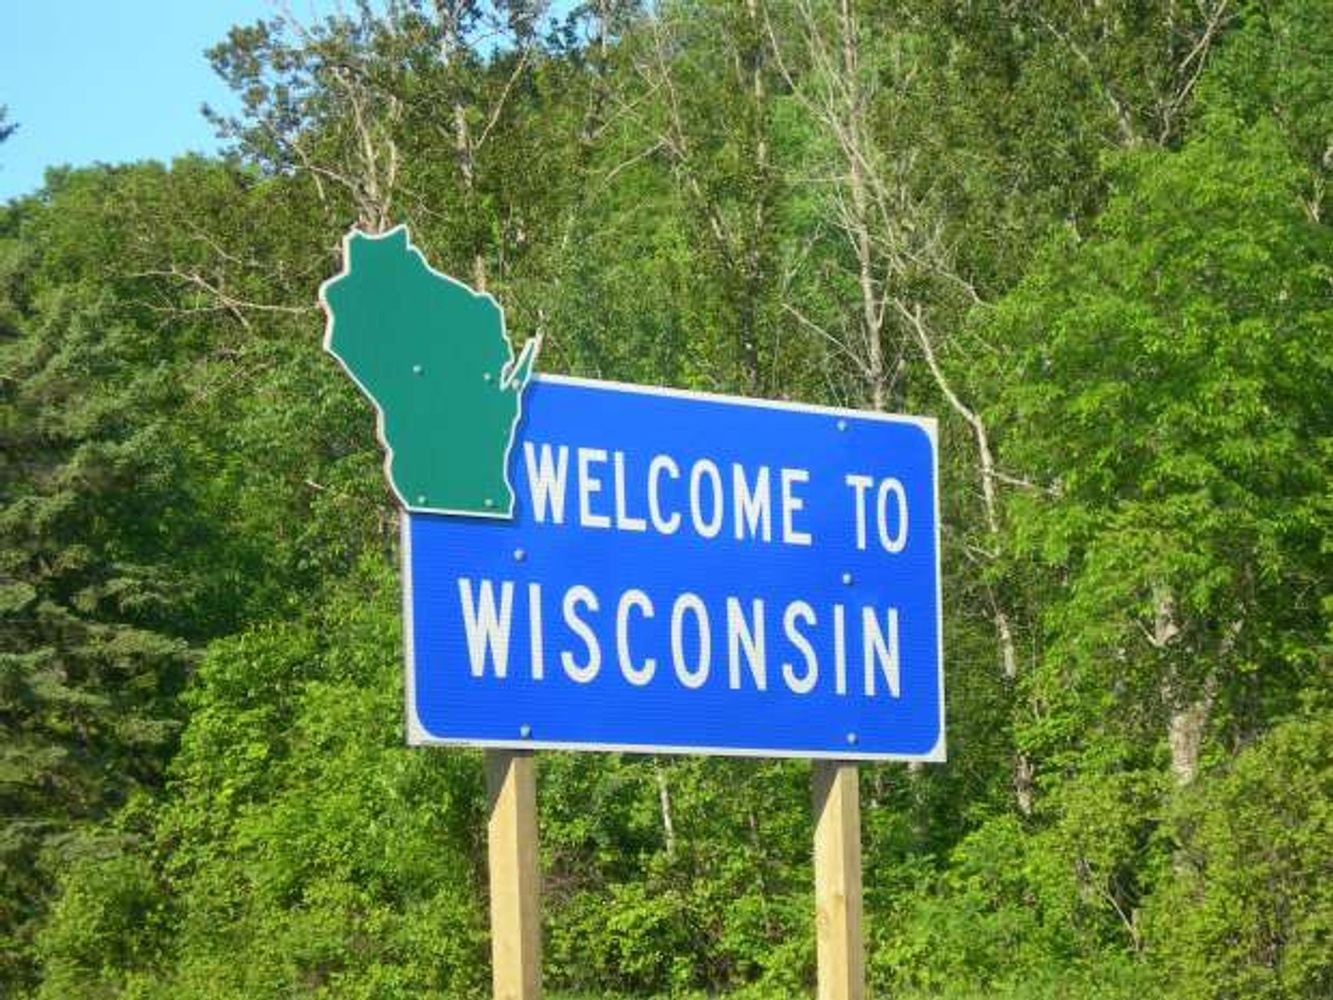 Travel Accommodations for HIM Wisconsin